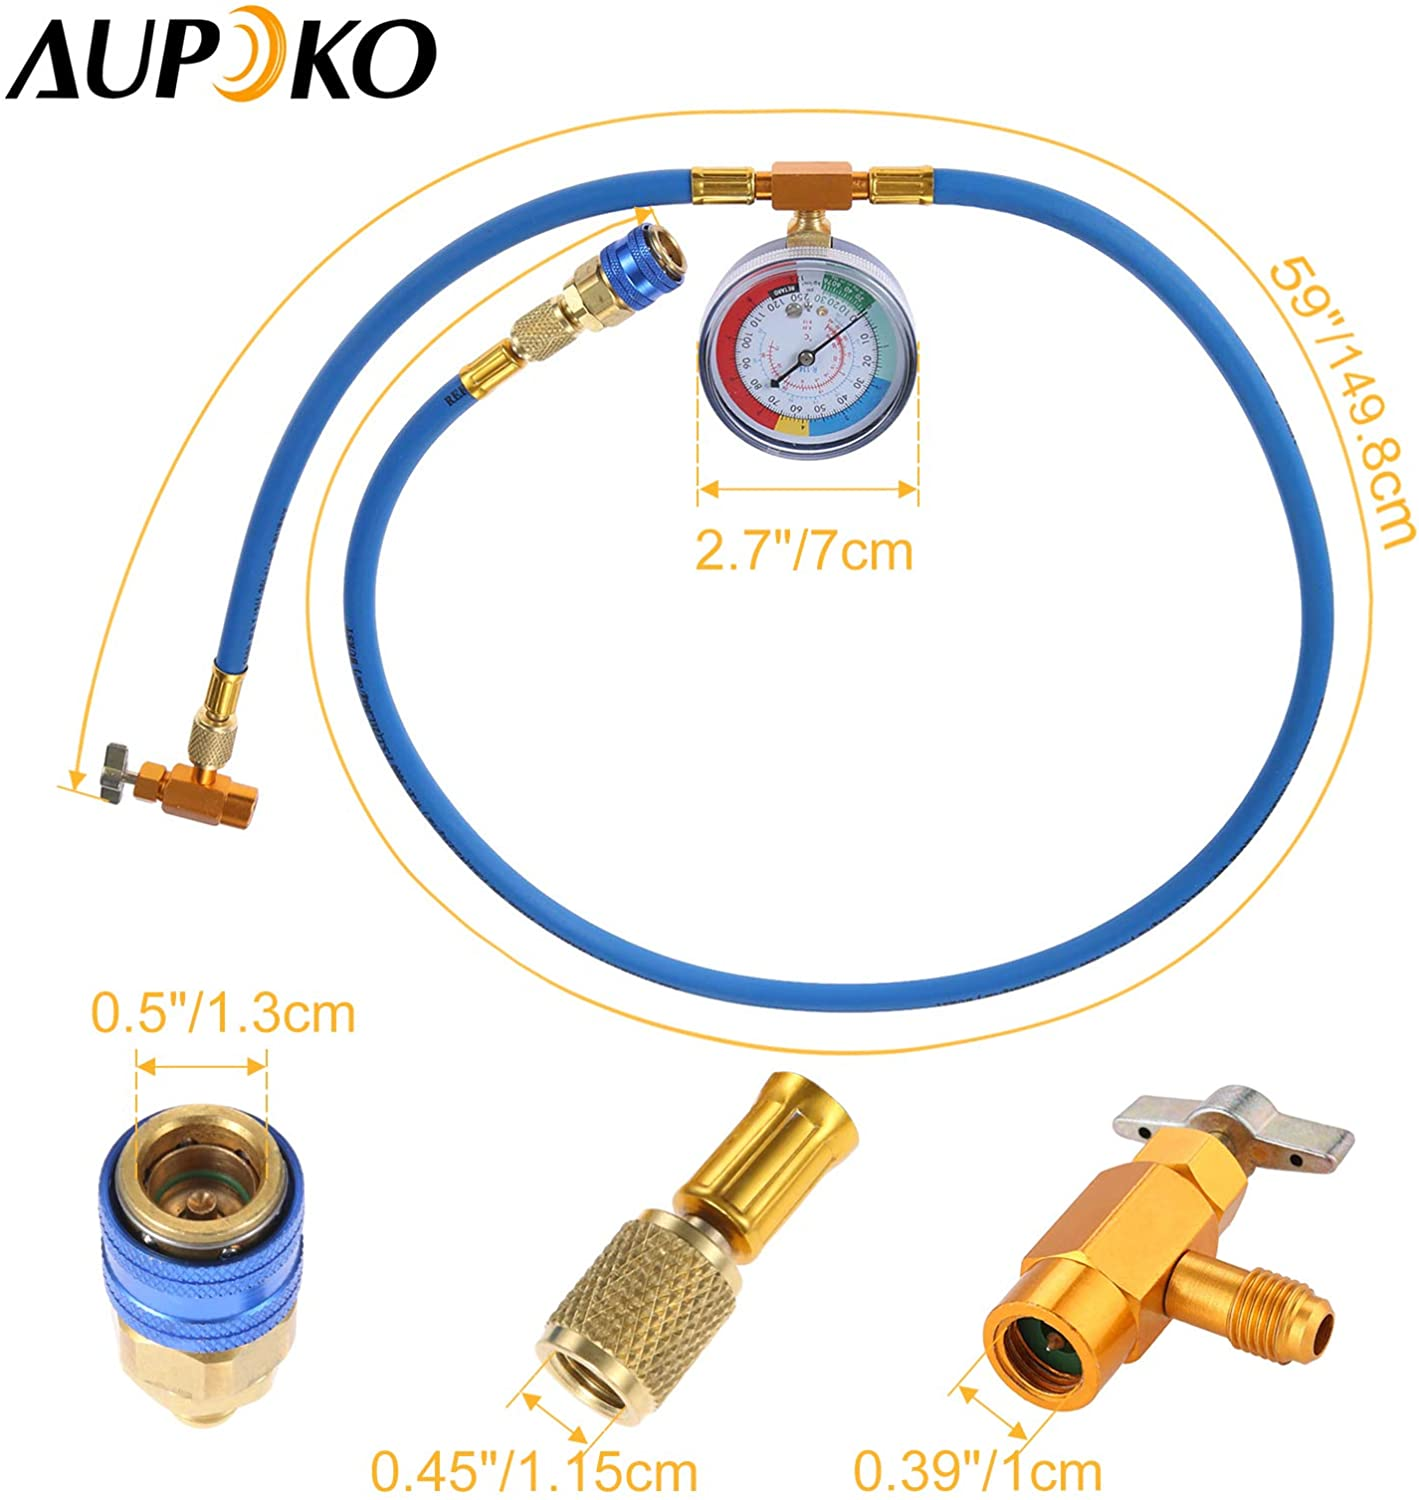 Aupoko R134A Refrigerant Recharging Hose Kit Low Pressure Gauge and 59 Recharge Hose AC Recharge Kit with 1//2/'/' Acme Male 1//4 SAE Female Puncture Type Can Tap Valve R134A Quick Couple